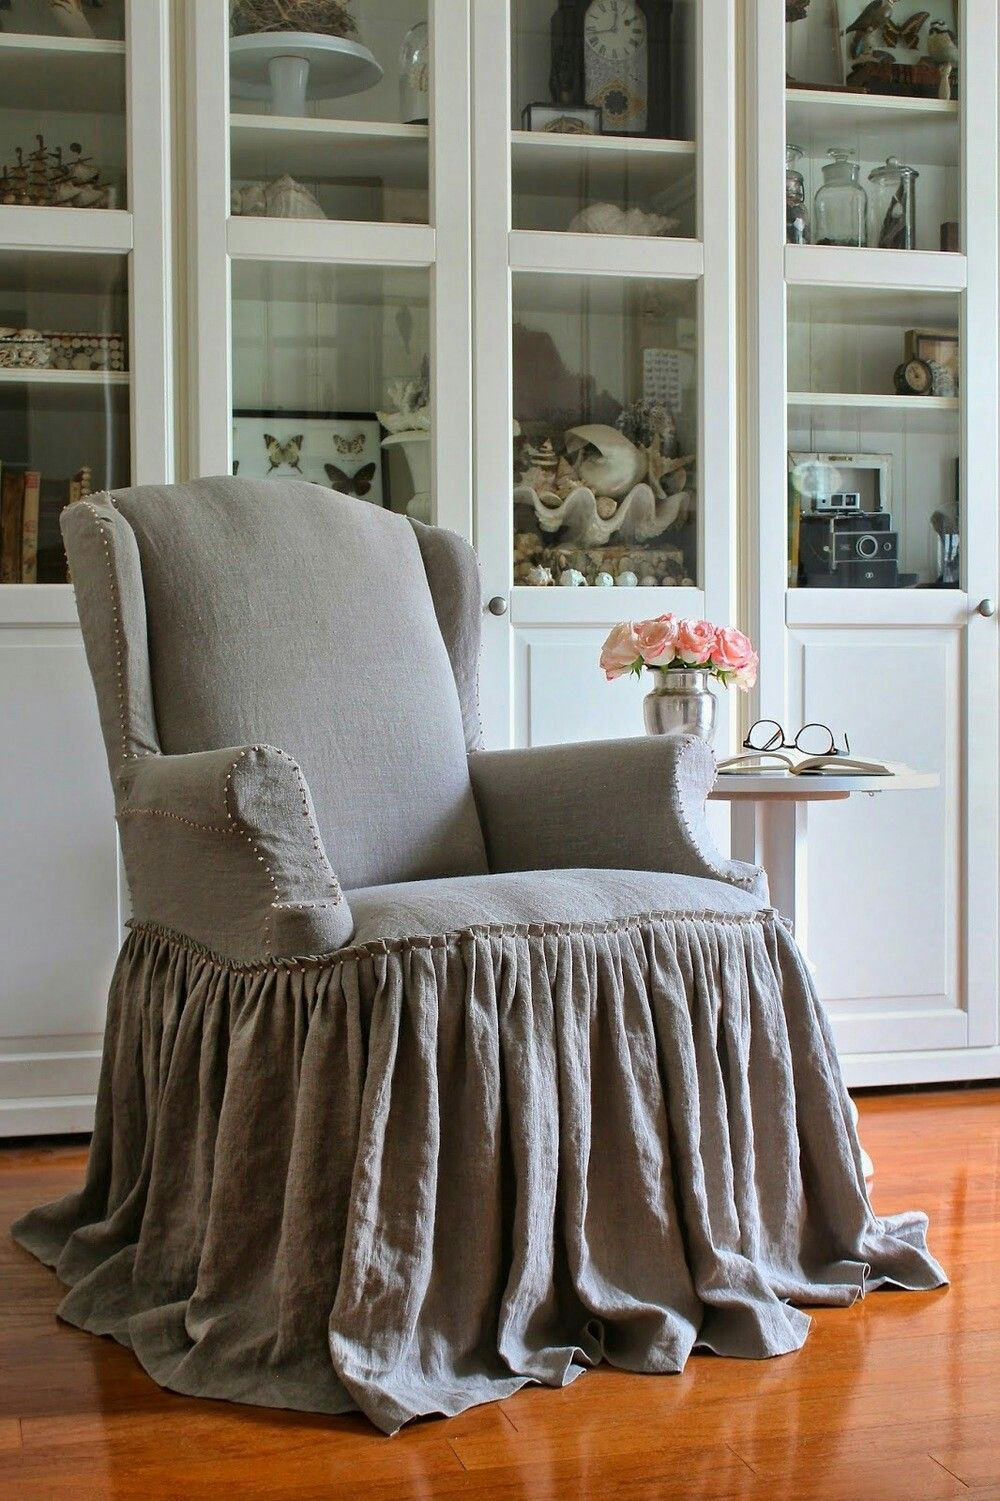 Pin by Alicia Miller on Sewing Furniture slipcovers